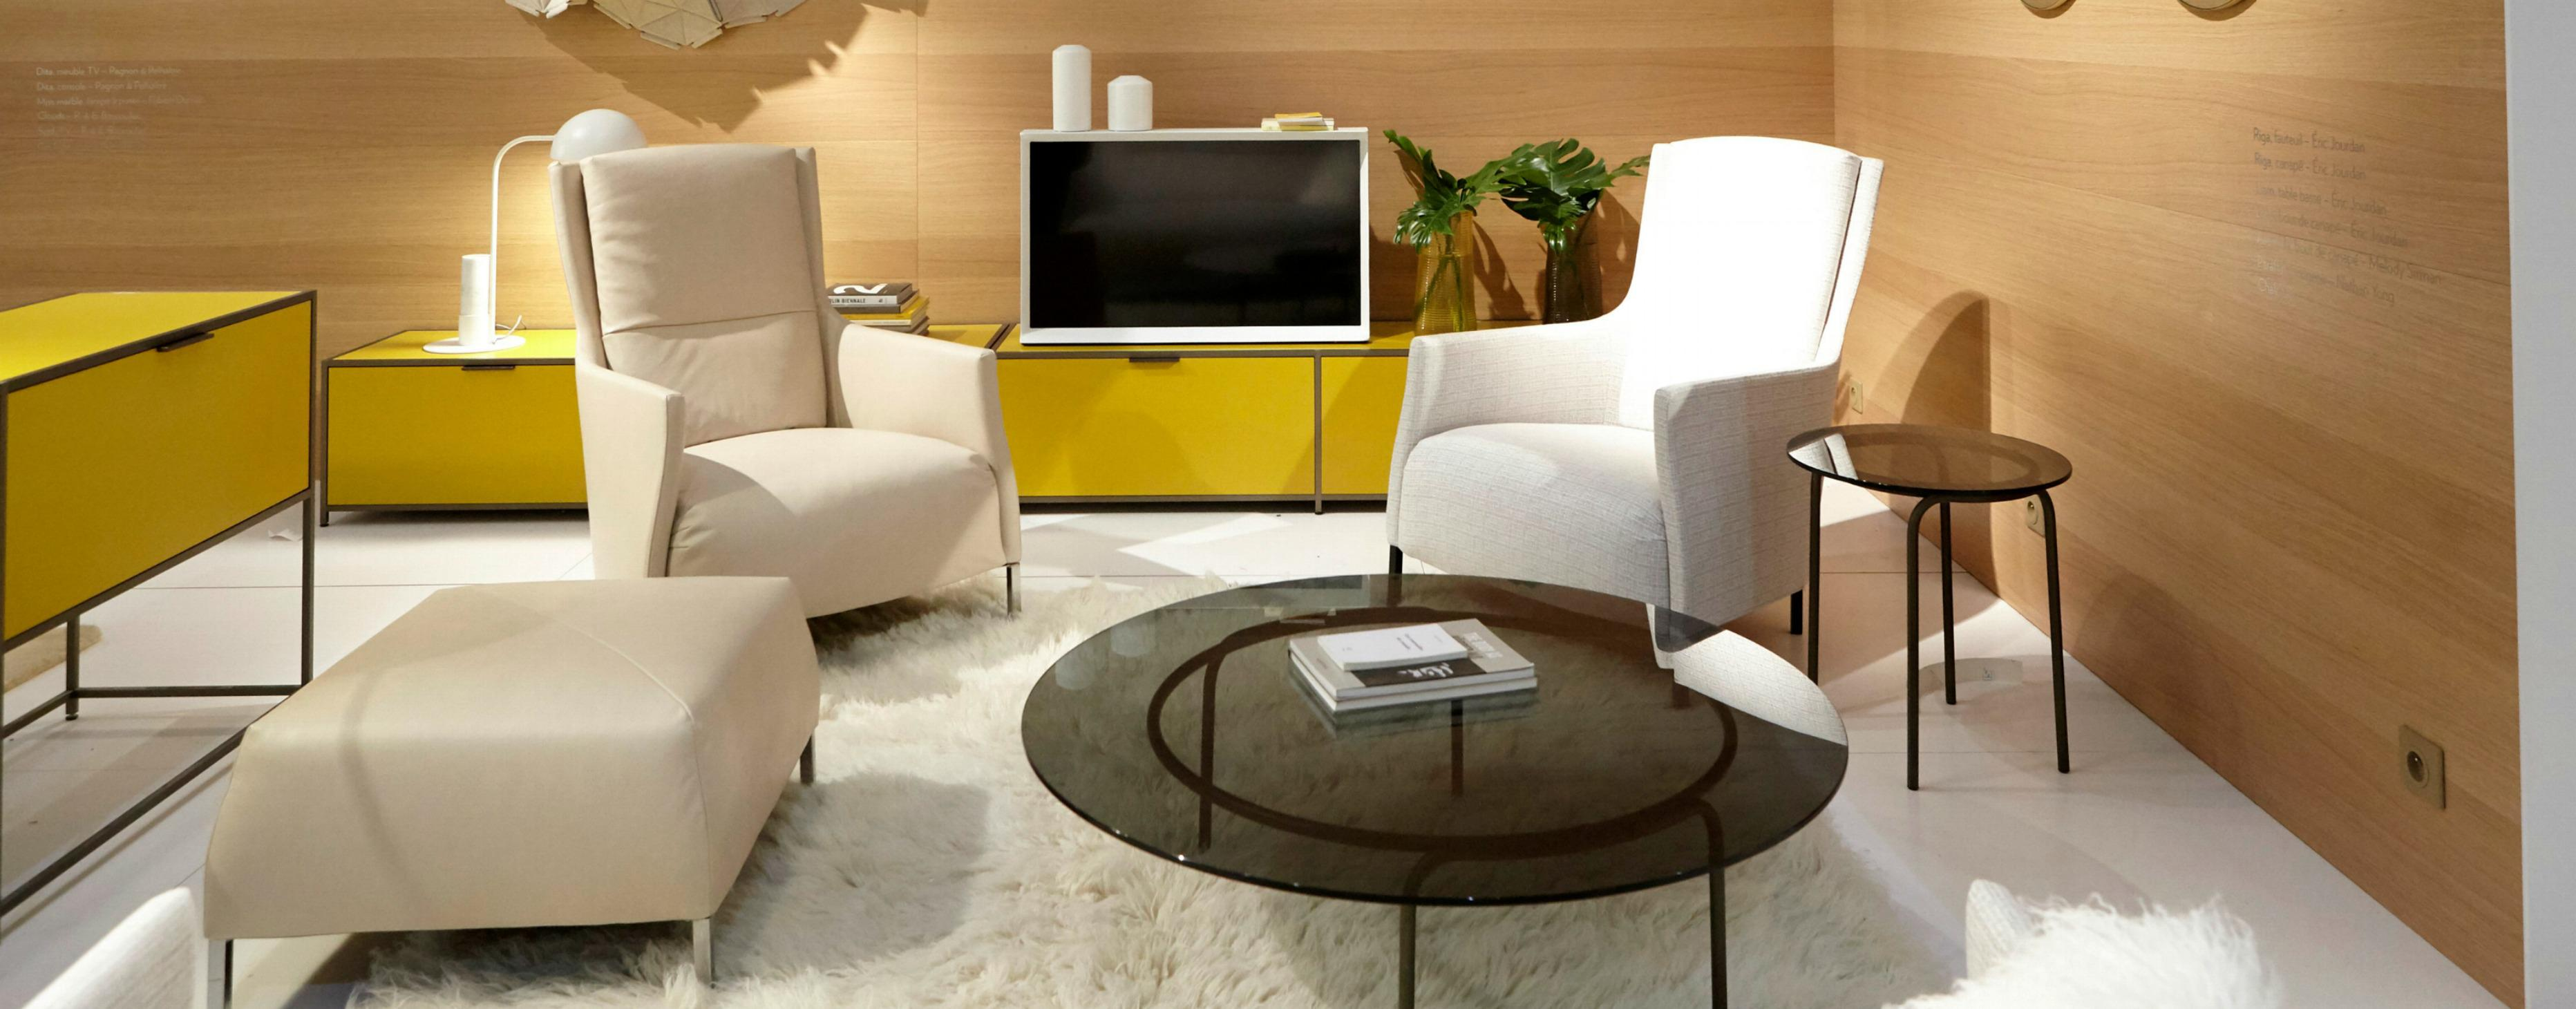 Ligne Roset Riga Ligne Roset Official Site Contemporary High End Furniture